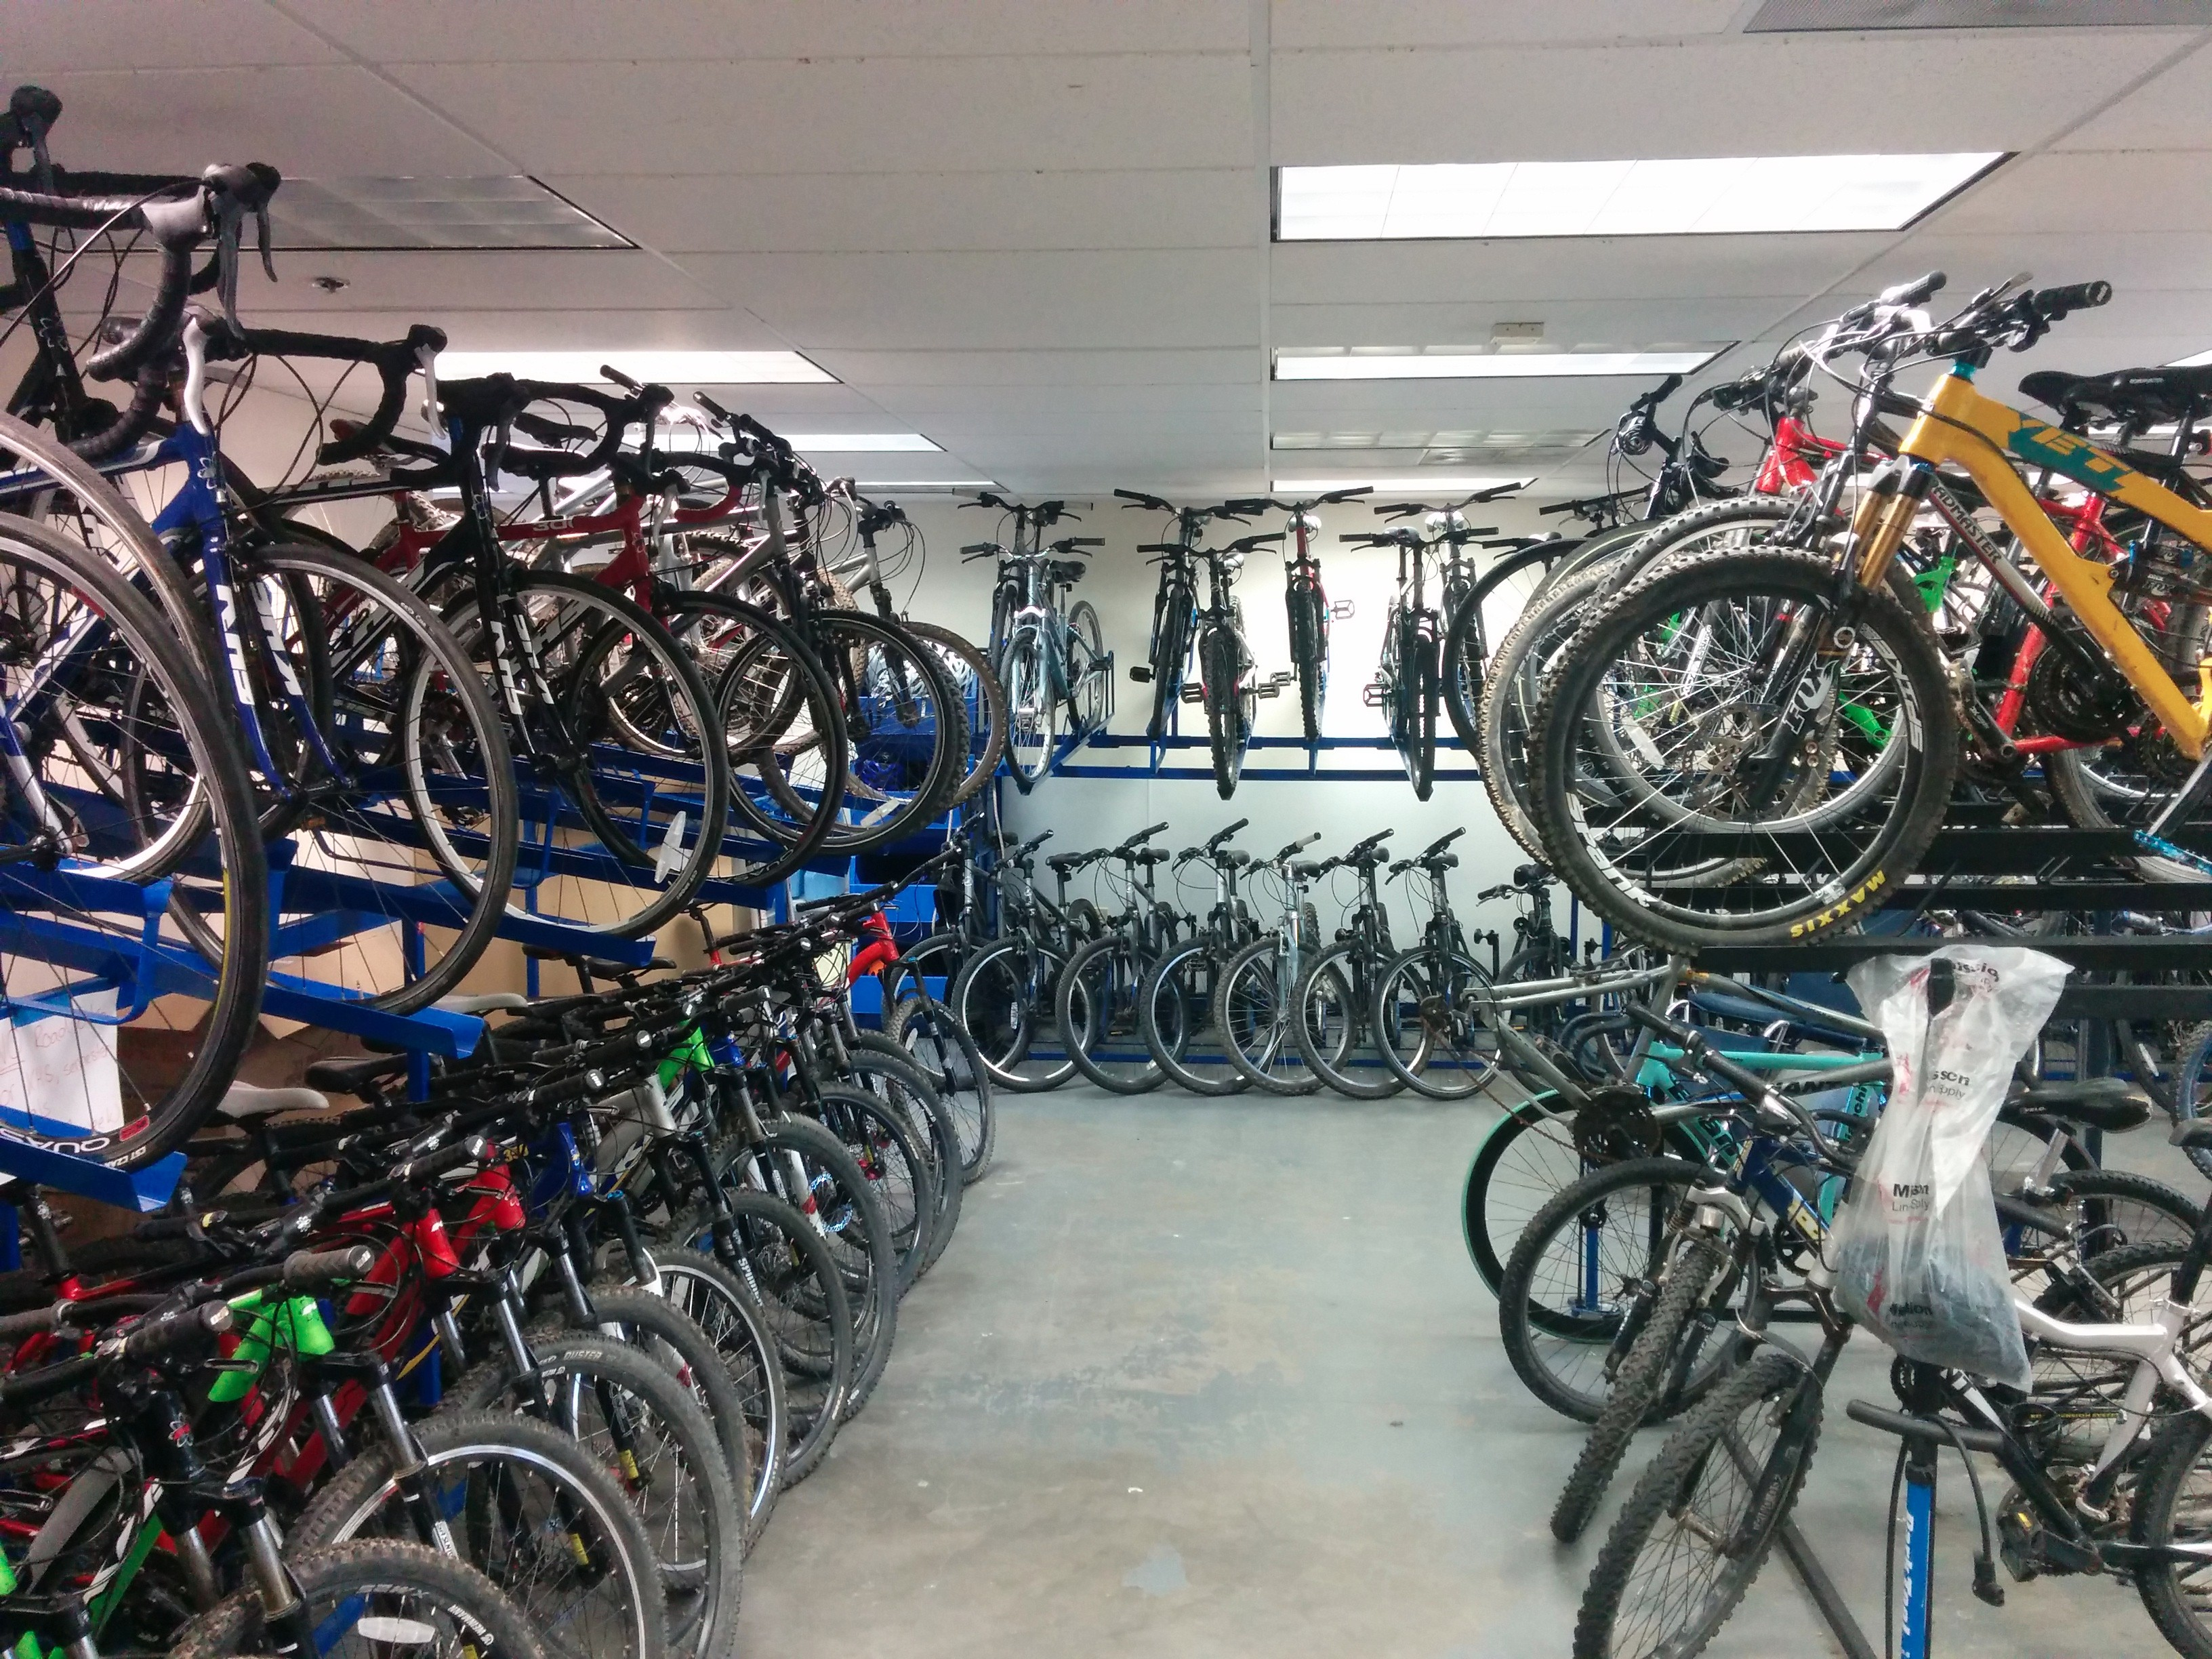 otter cycle center, shop photo